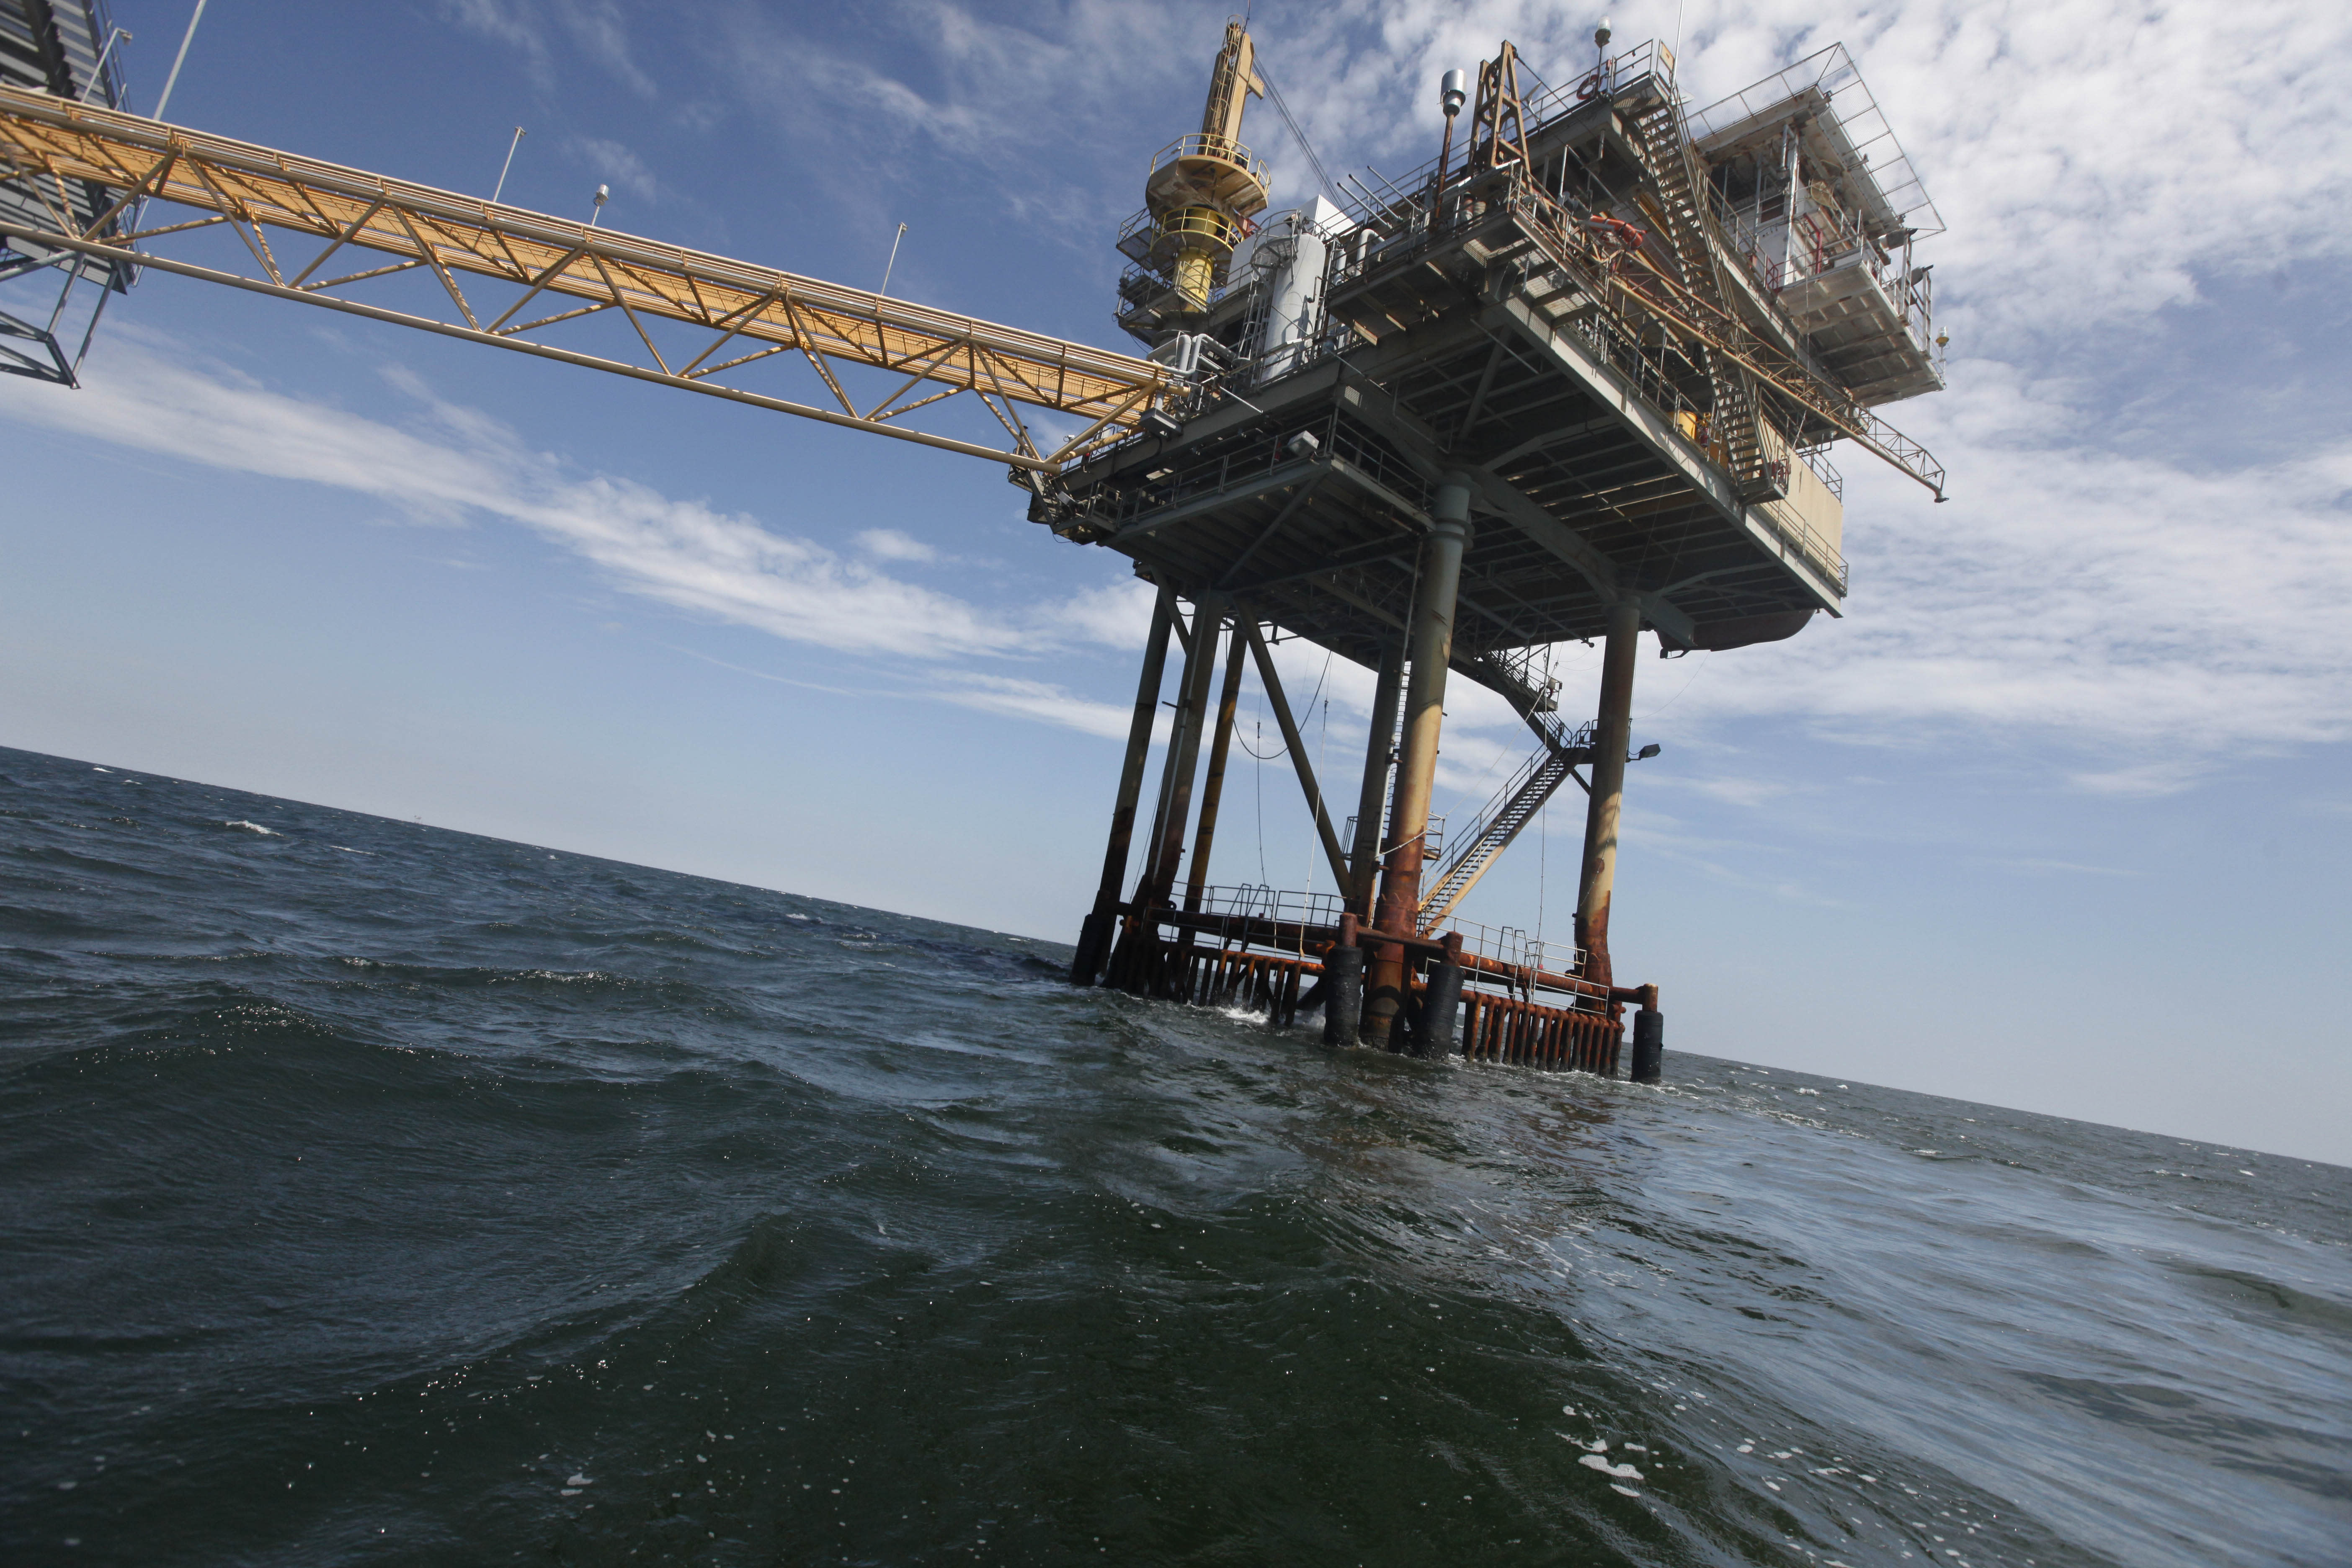 Q&A on the Gulf, resilient but scarred 5 years after spill